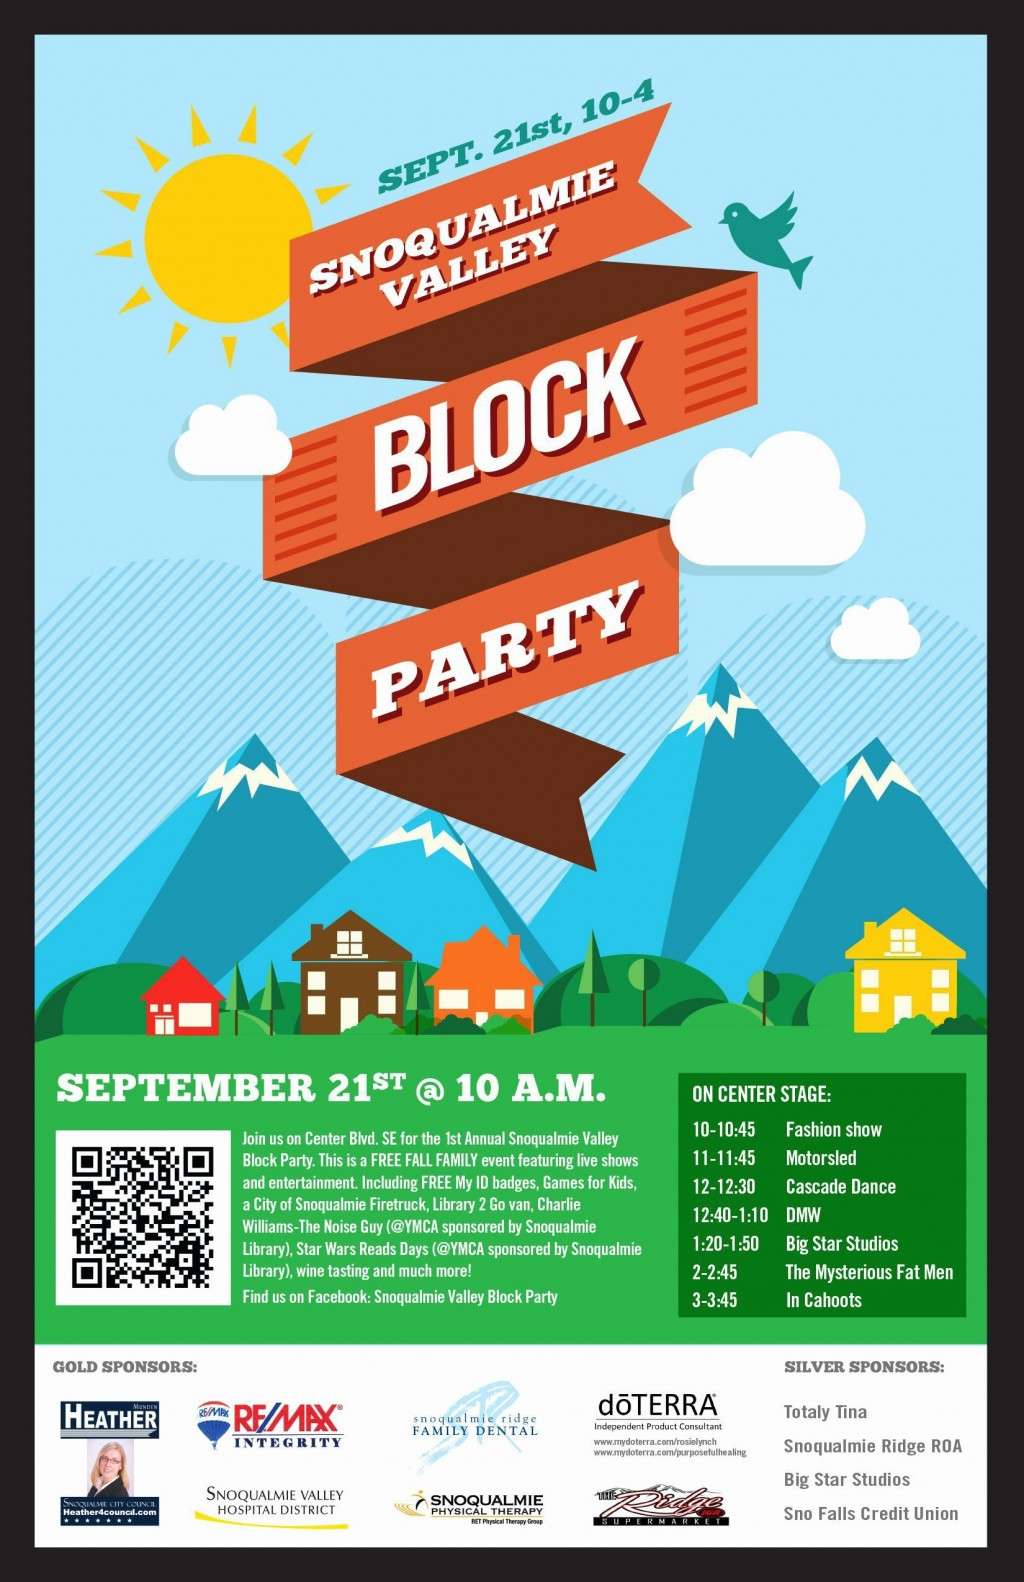 000 Remarkable Block Party Flyer Template Picture  TemplatesLarge